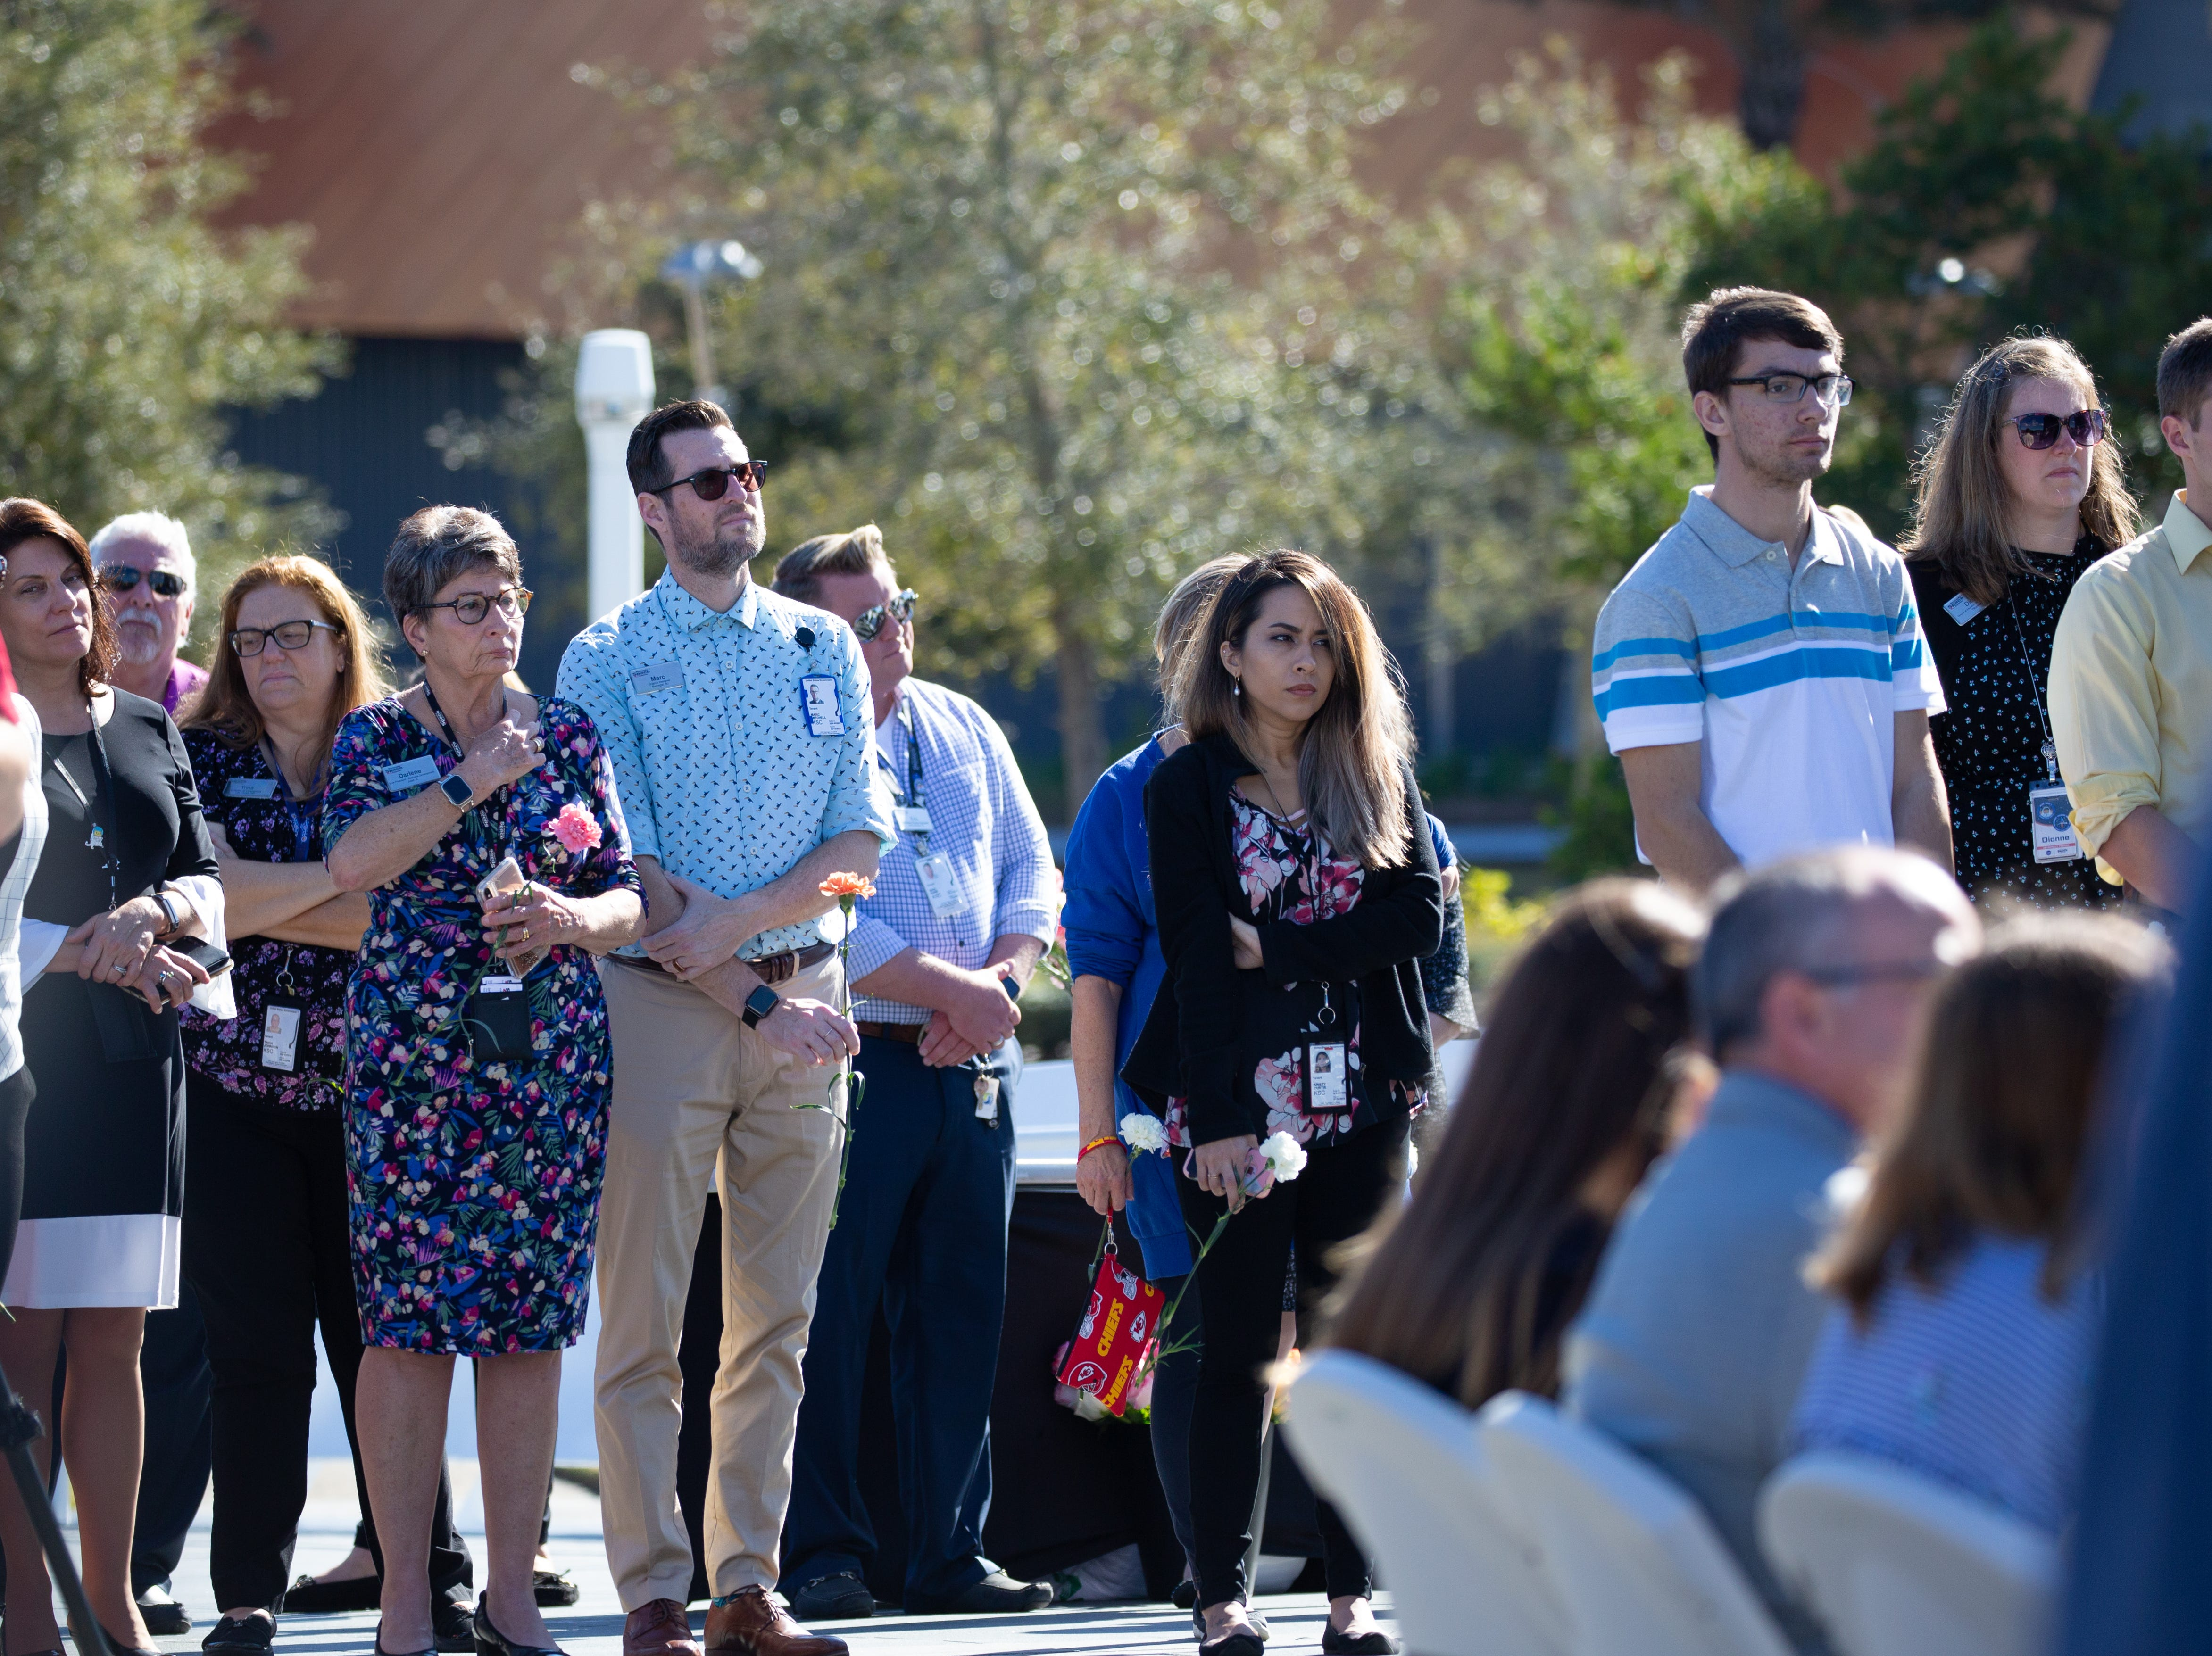 Crowds gather at the Space Mirror Memorial for NASA's Day of Remembrance at the Kennedy Space Center Visitor Complex on Thursday, Feb. 7, 2019.